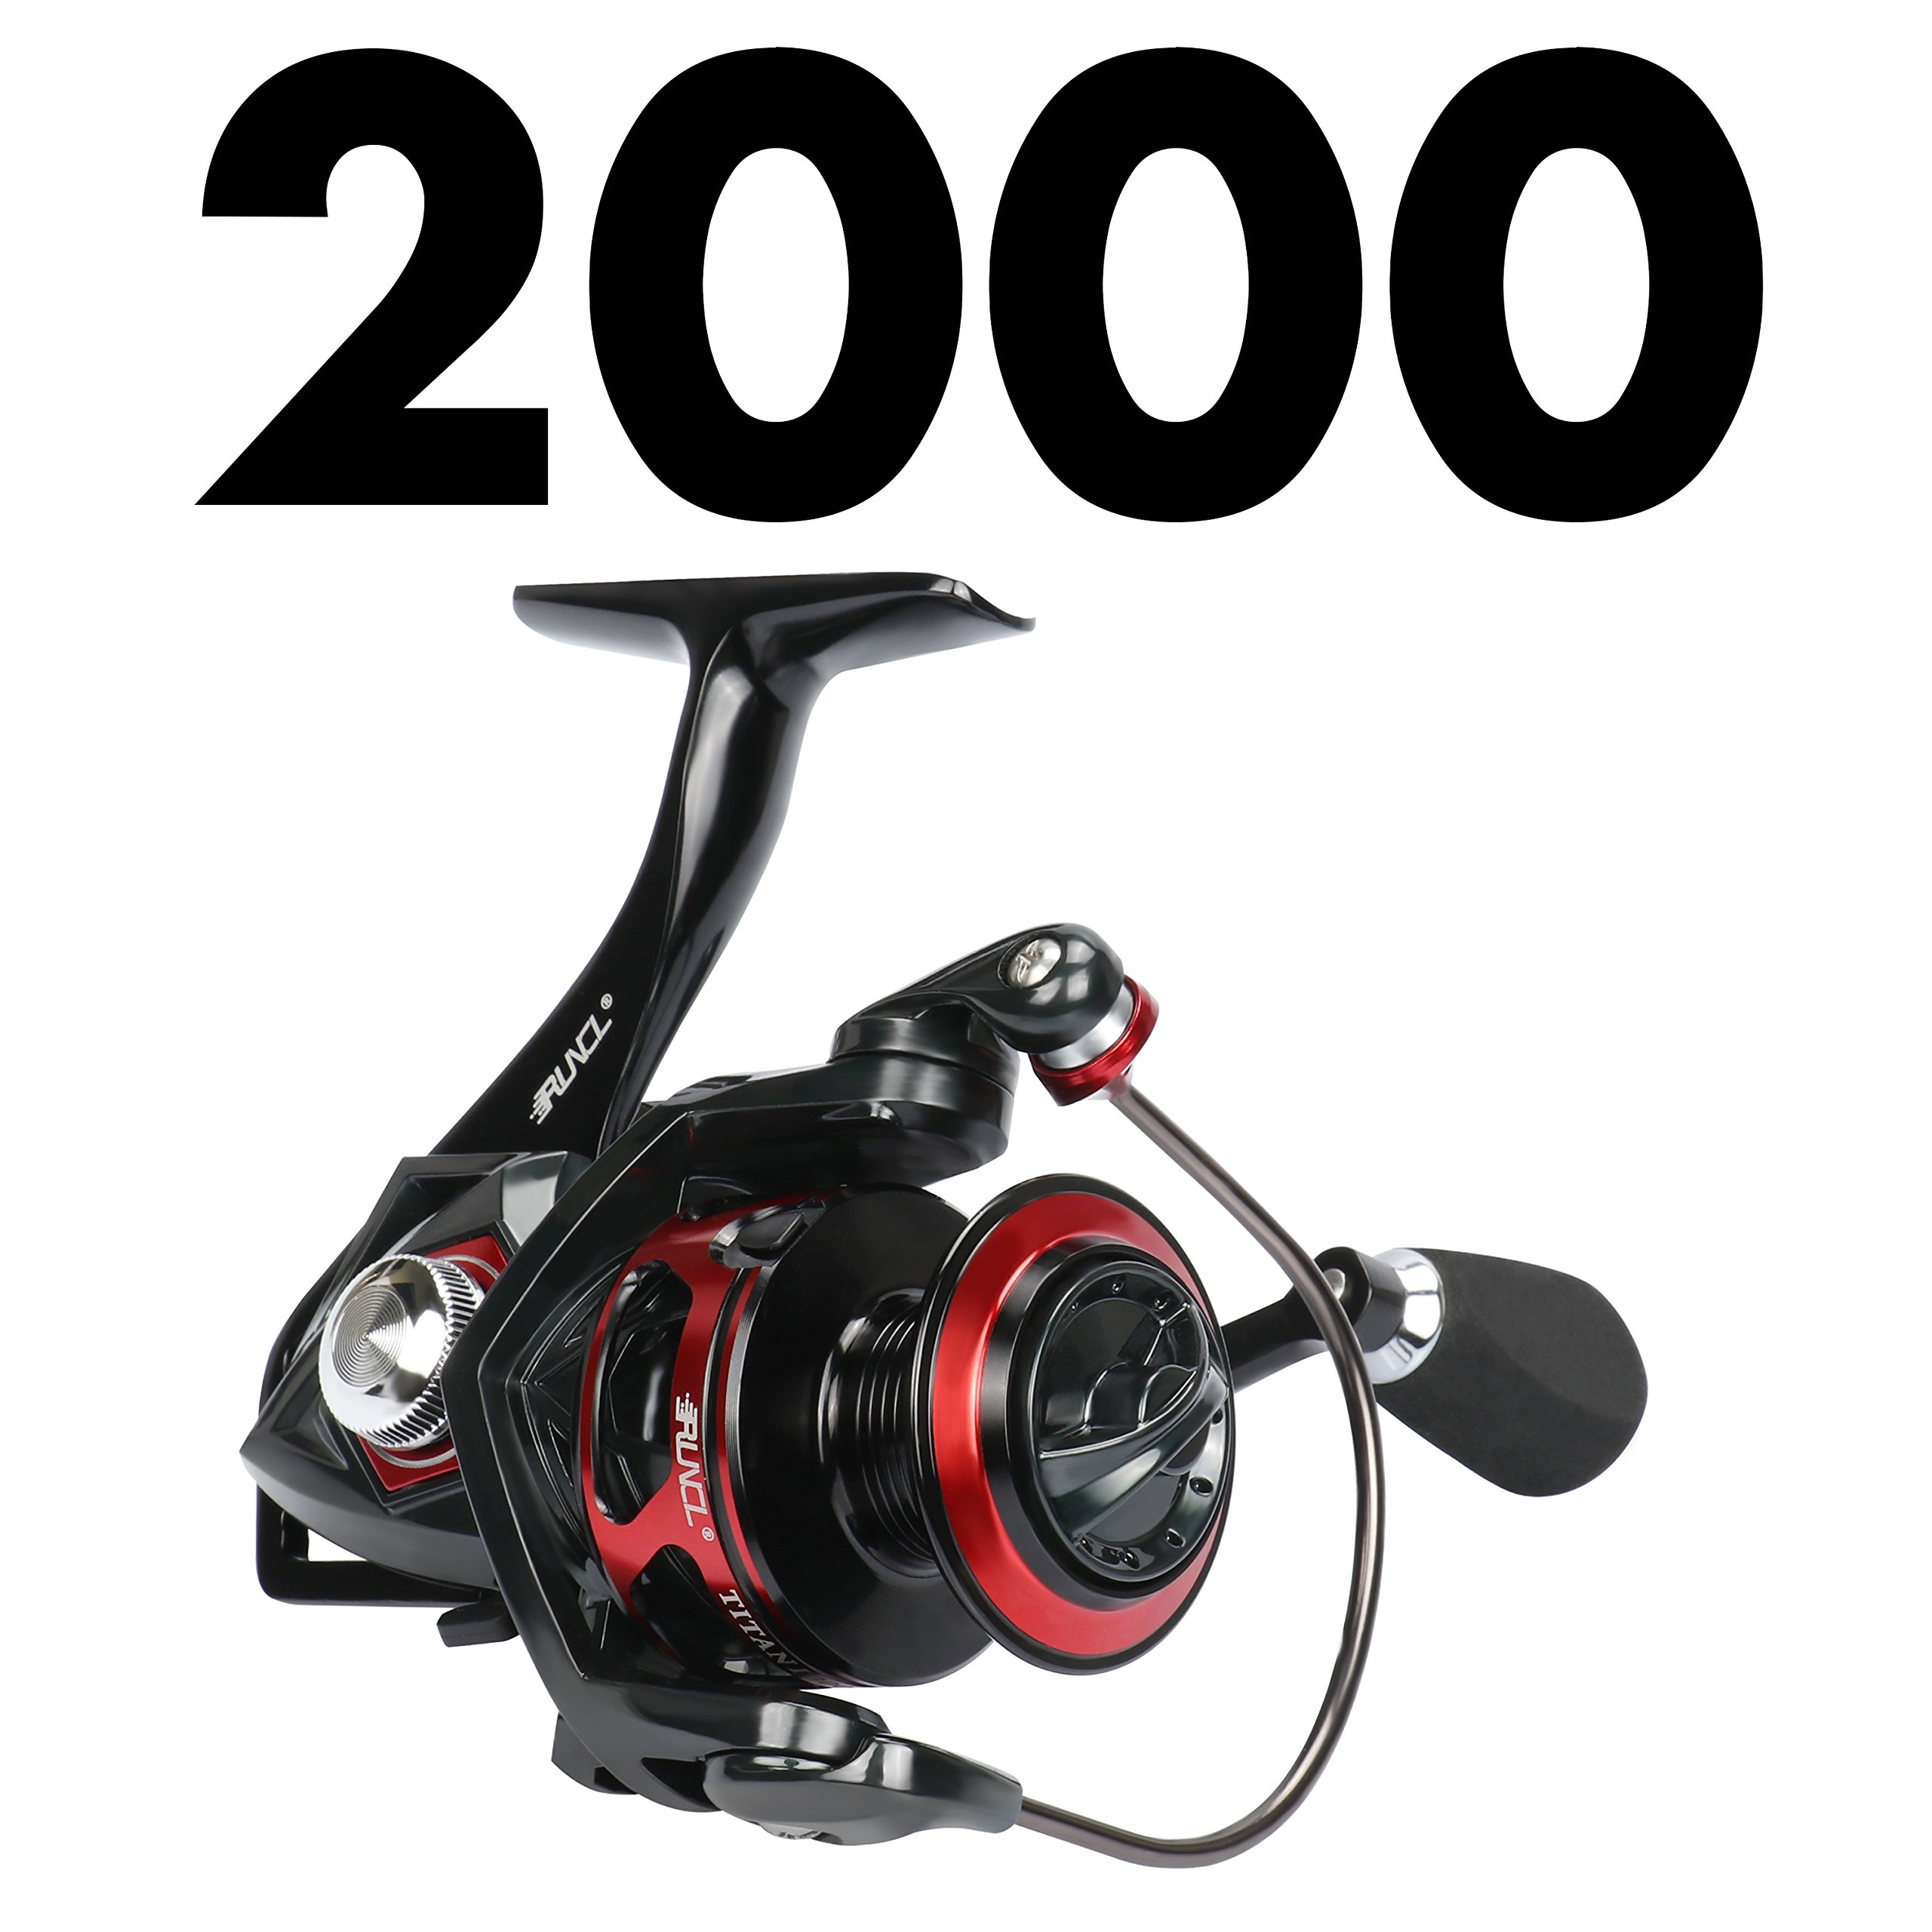 RUNCL Spinning Reel Titan I, Fishing Reel with Full Metal Body, Max Drag 33LB, 5 Carbon Fiber Drag Washers, 9+1 Stainless Steel Shielded Bearings, Hollow Out Rotor for Saltwater and Freshwater (2000) by RUNCL (Image #2)